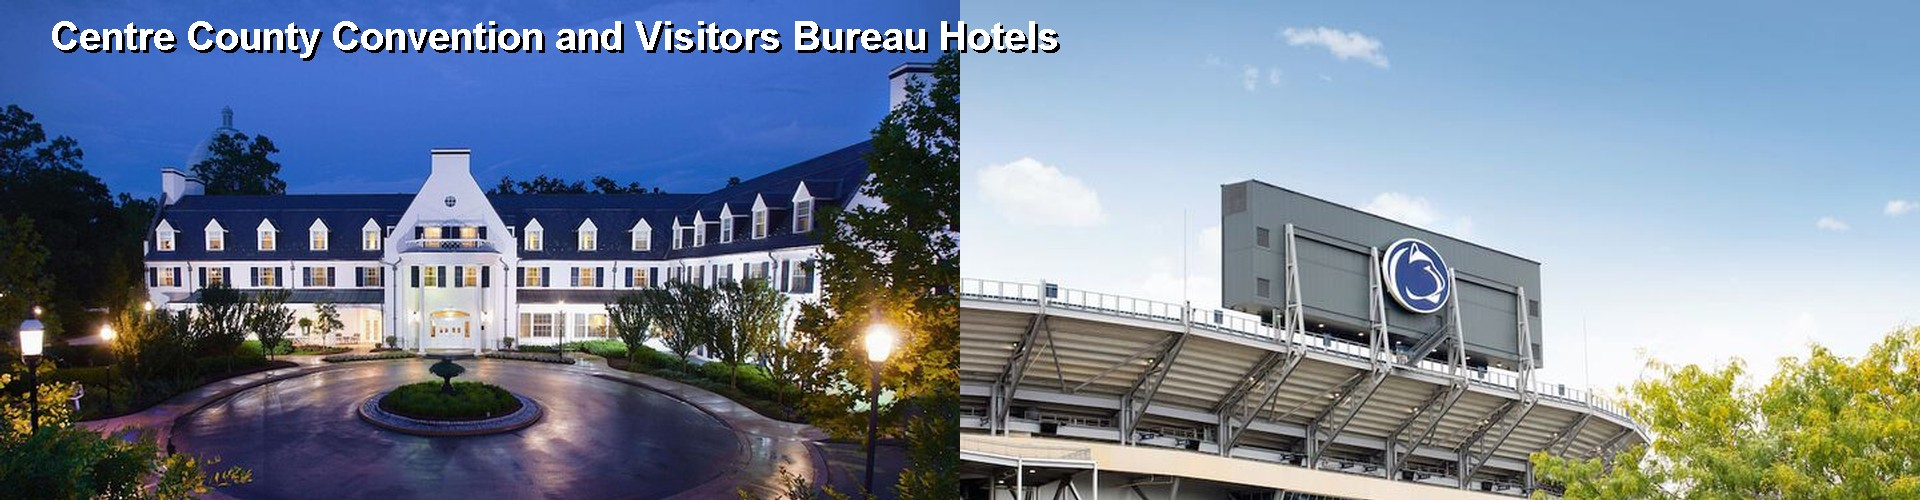 5 Best Hotels near Centre County Convention and Visitors Bureau